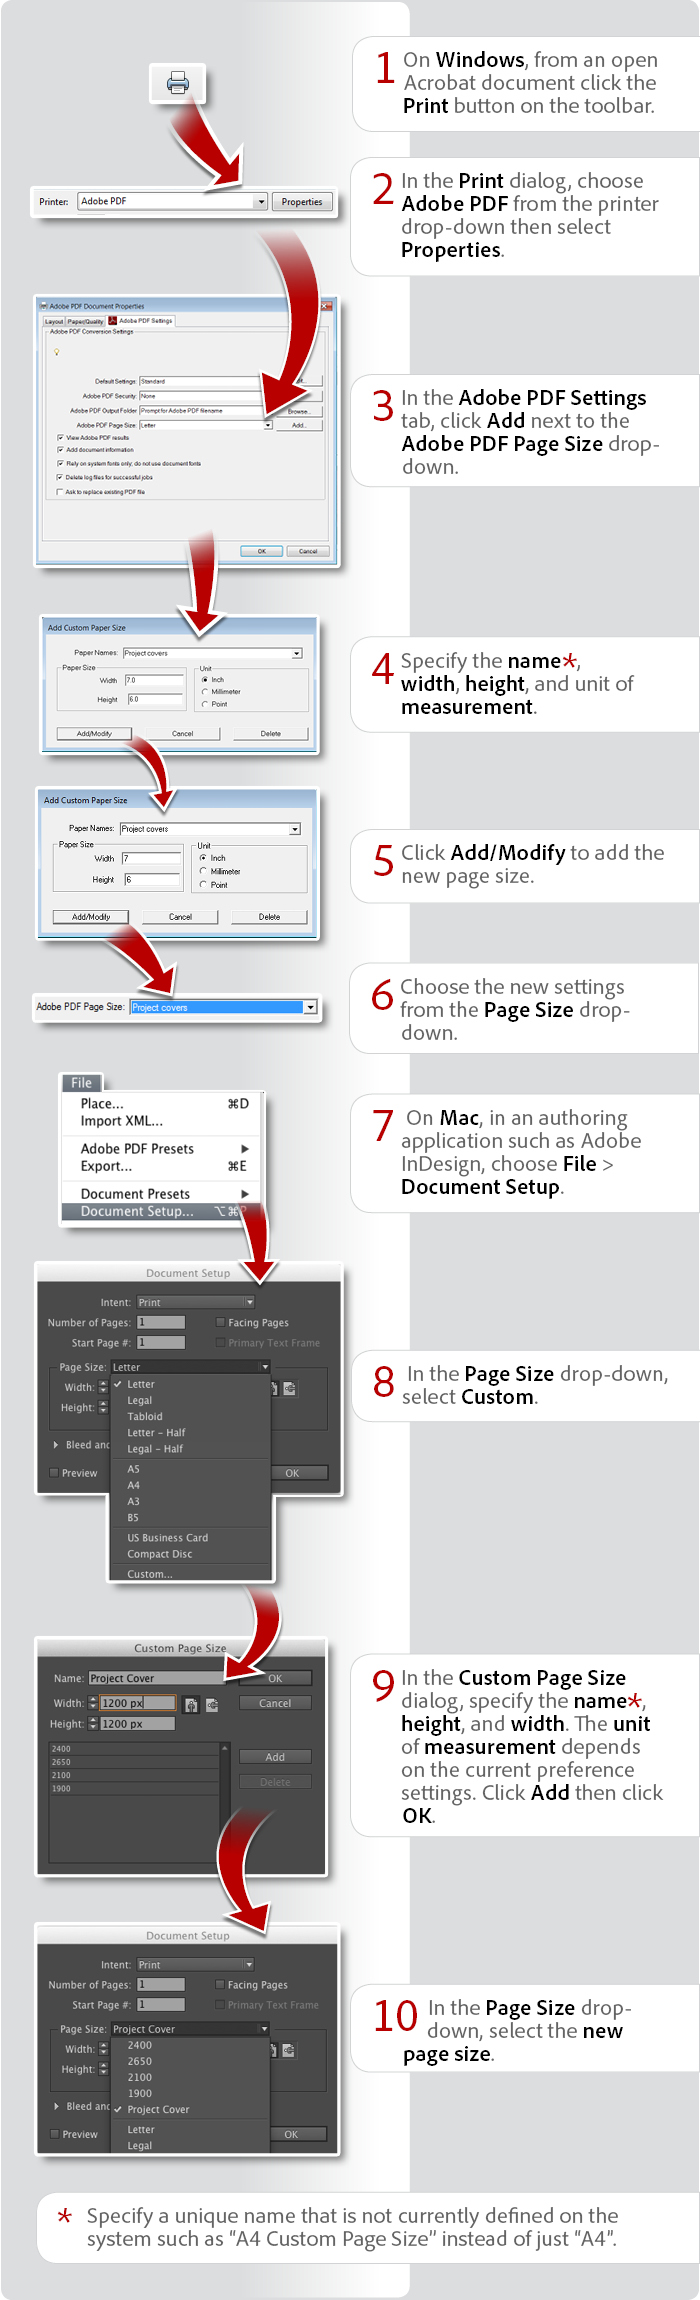 How to create a custom page size using Acrobat XI